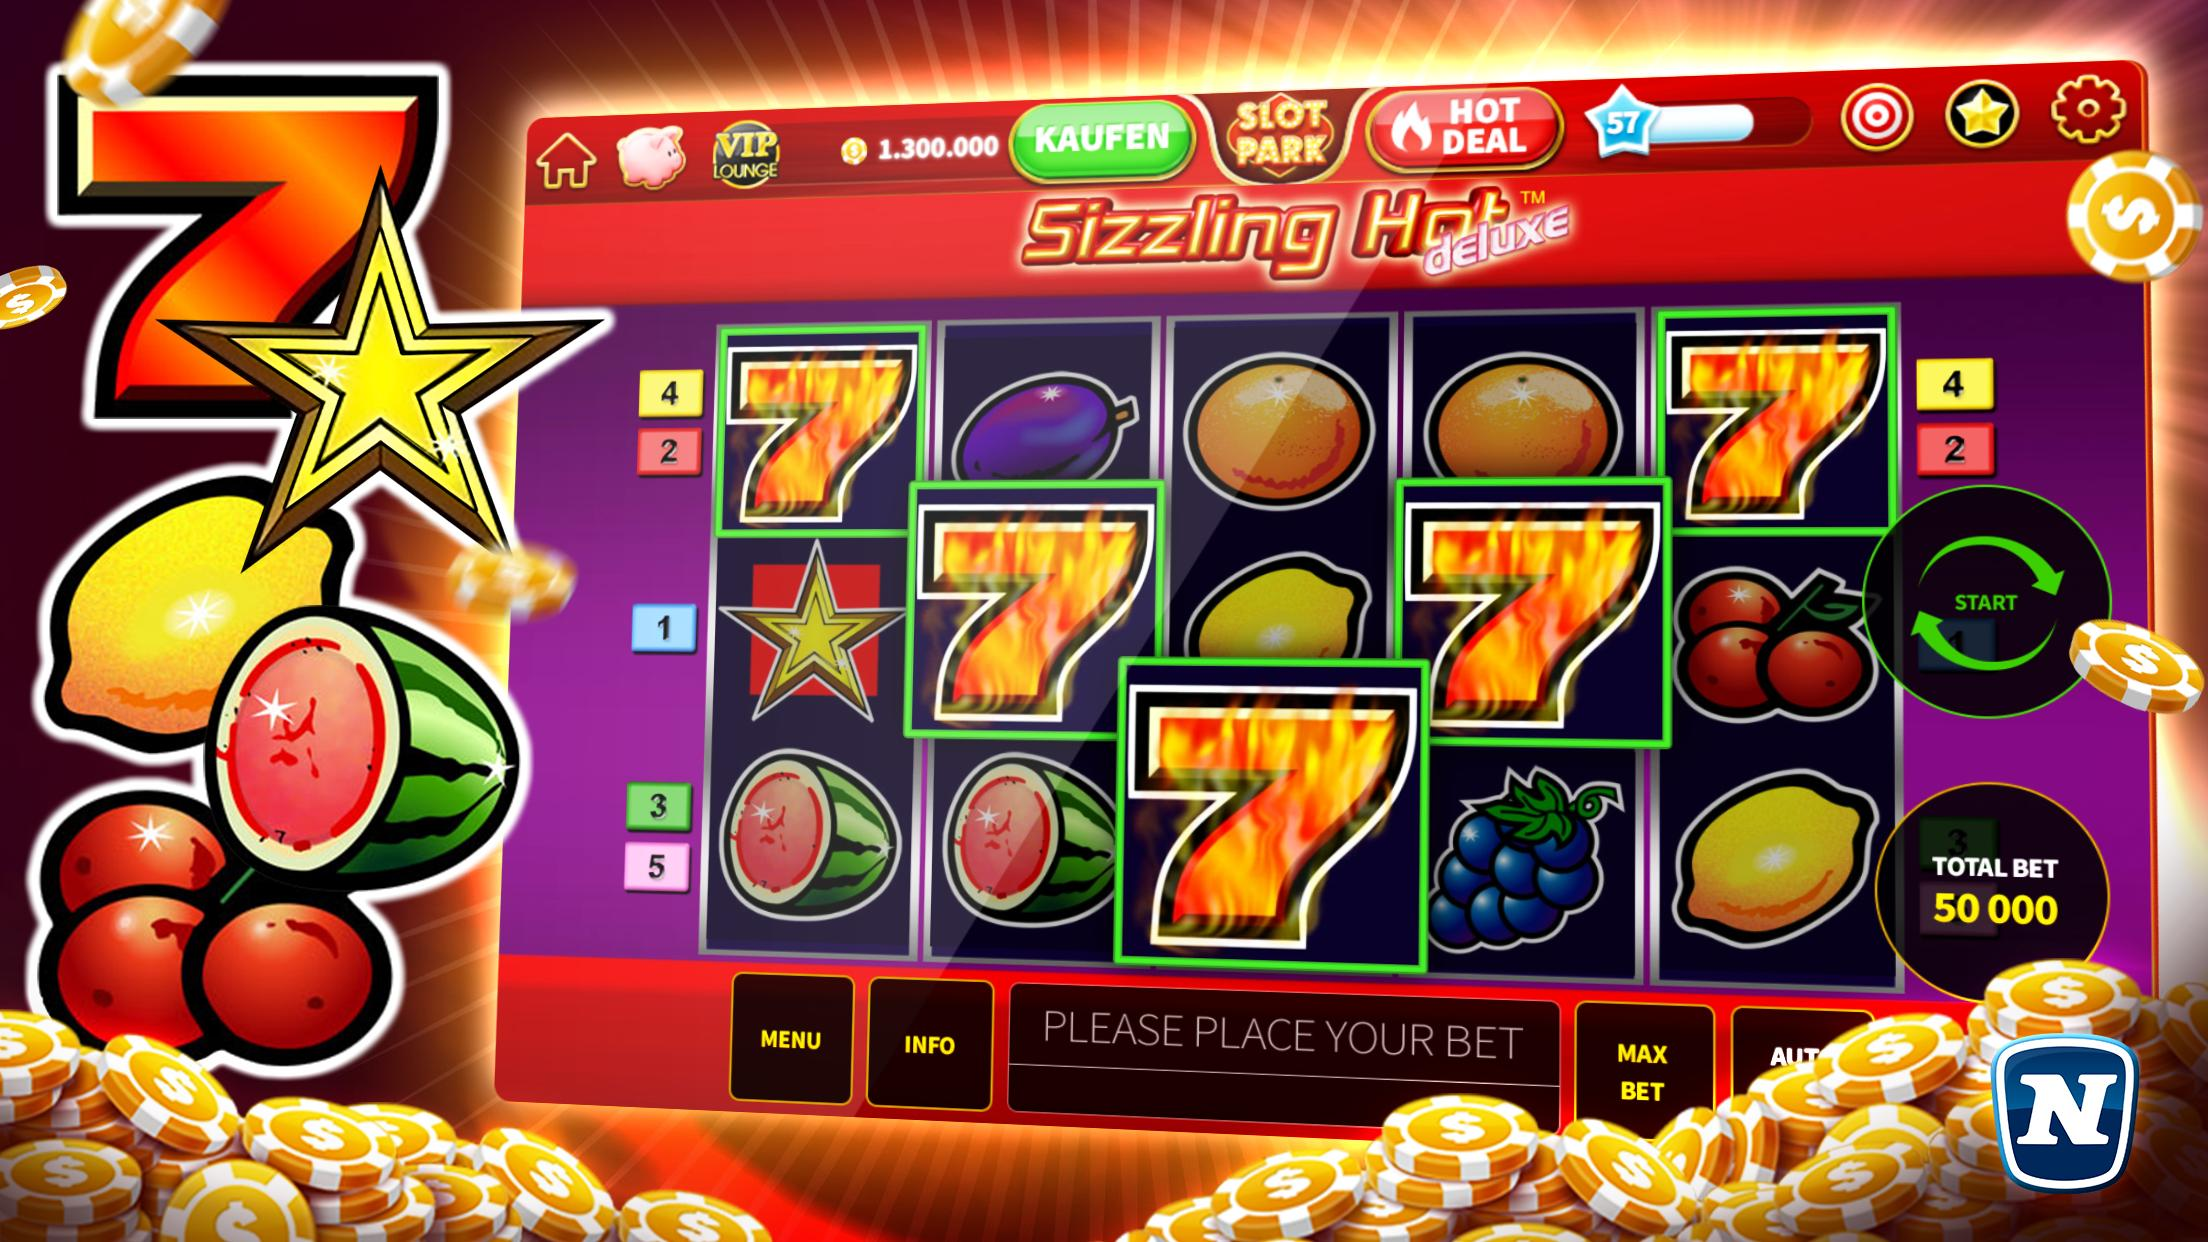 Slotpark Online Casino Games & Free Slot Machine 3.21.1 Screenshot 12